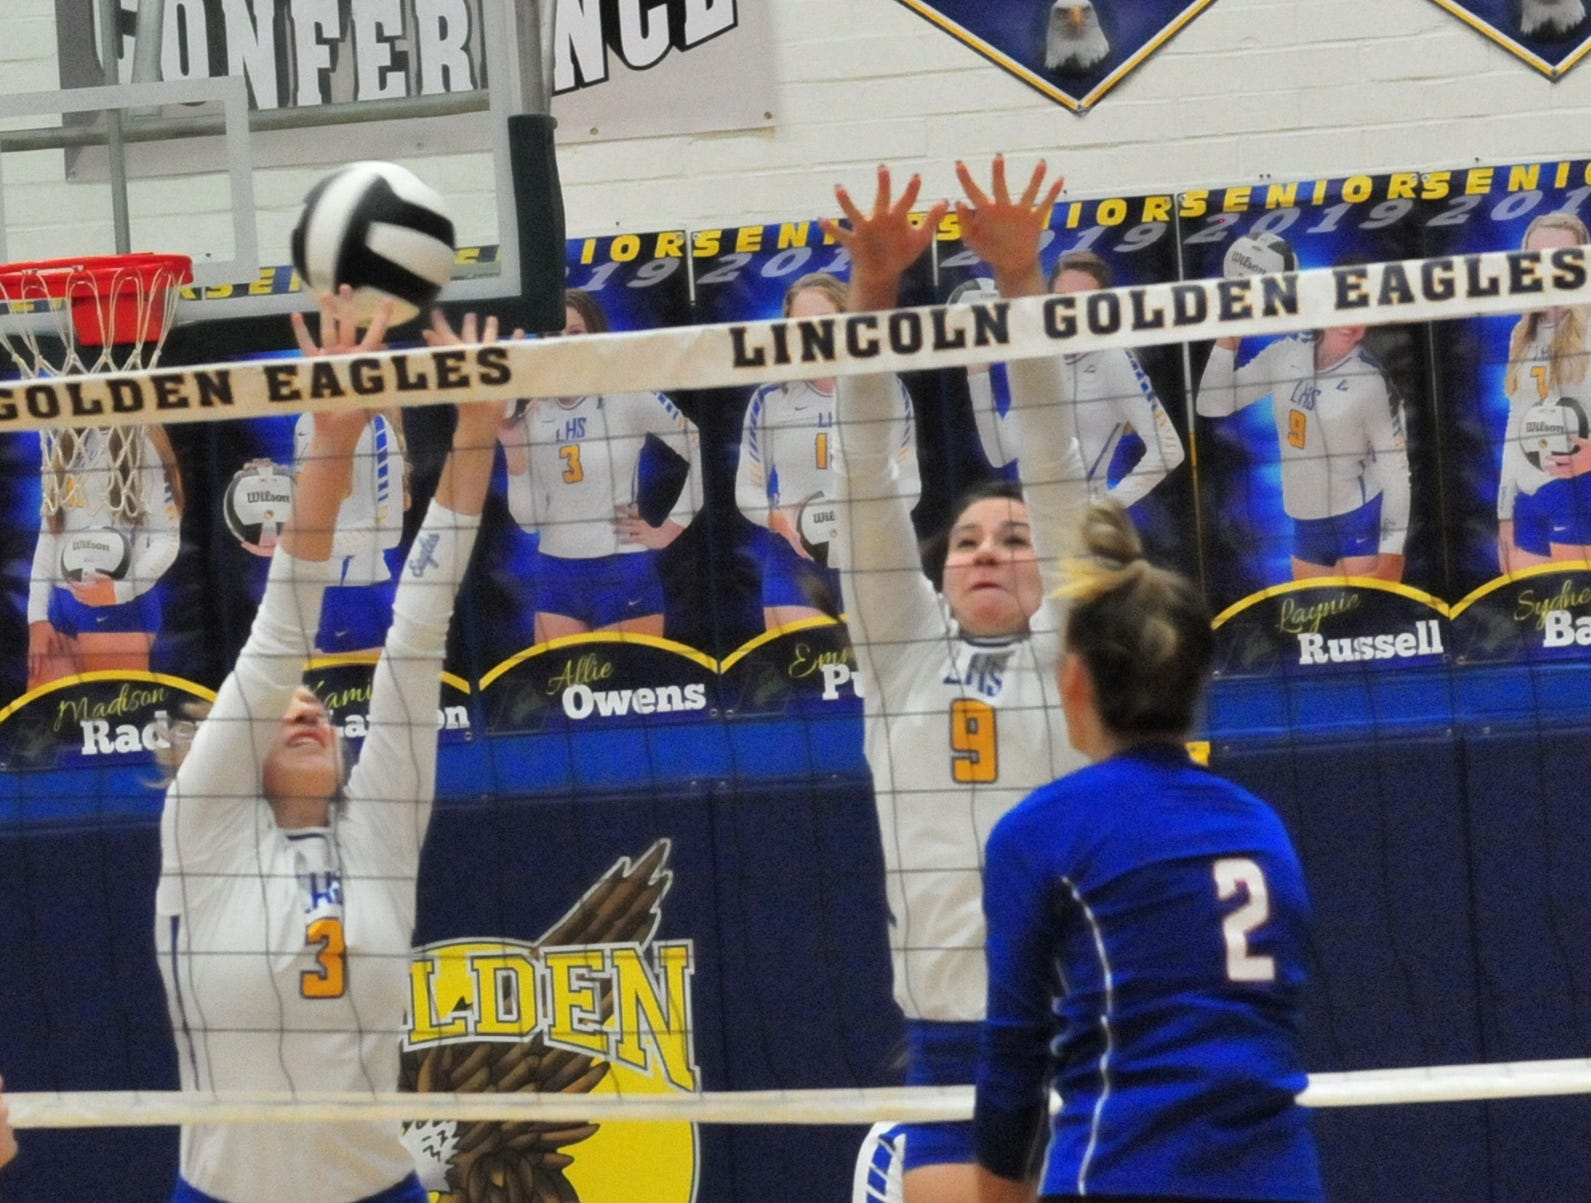 Lincoln's Allie Owens (3) and Laynie Russell (9) during a 3-1 win over Union County Thursday, Oct. 11, 2018.